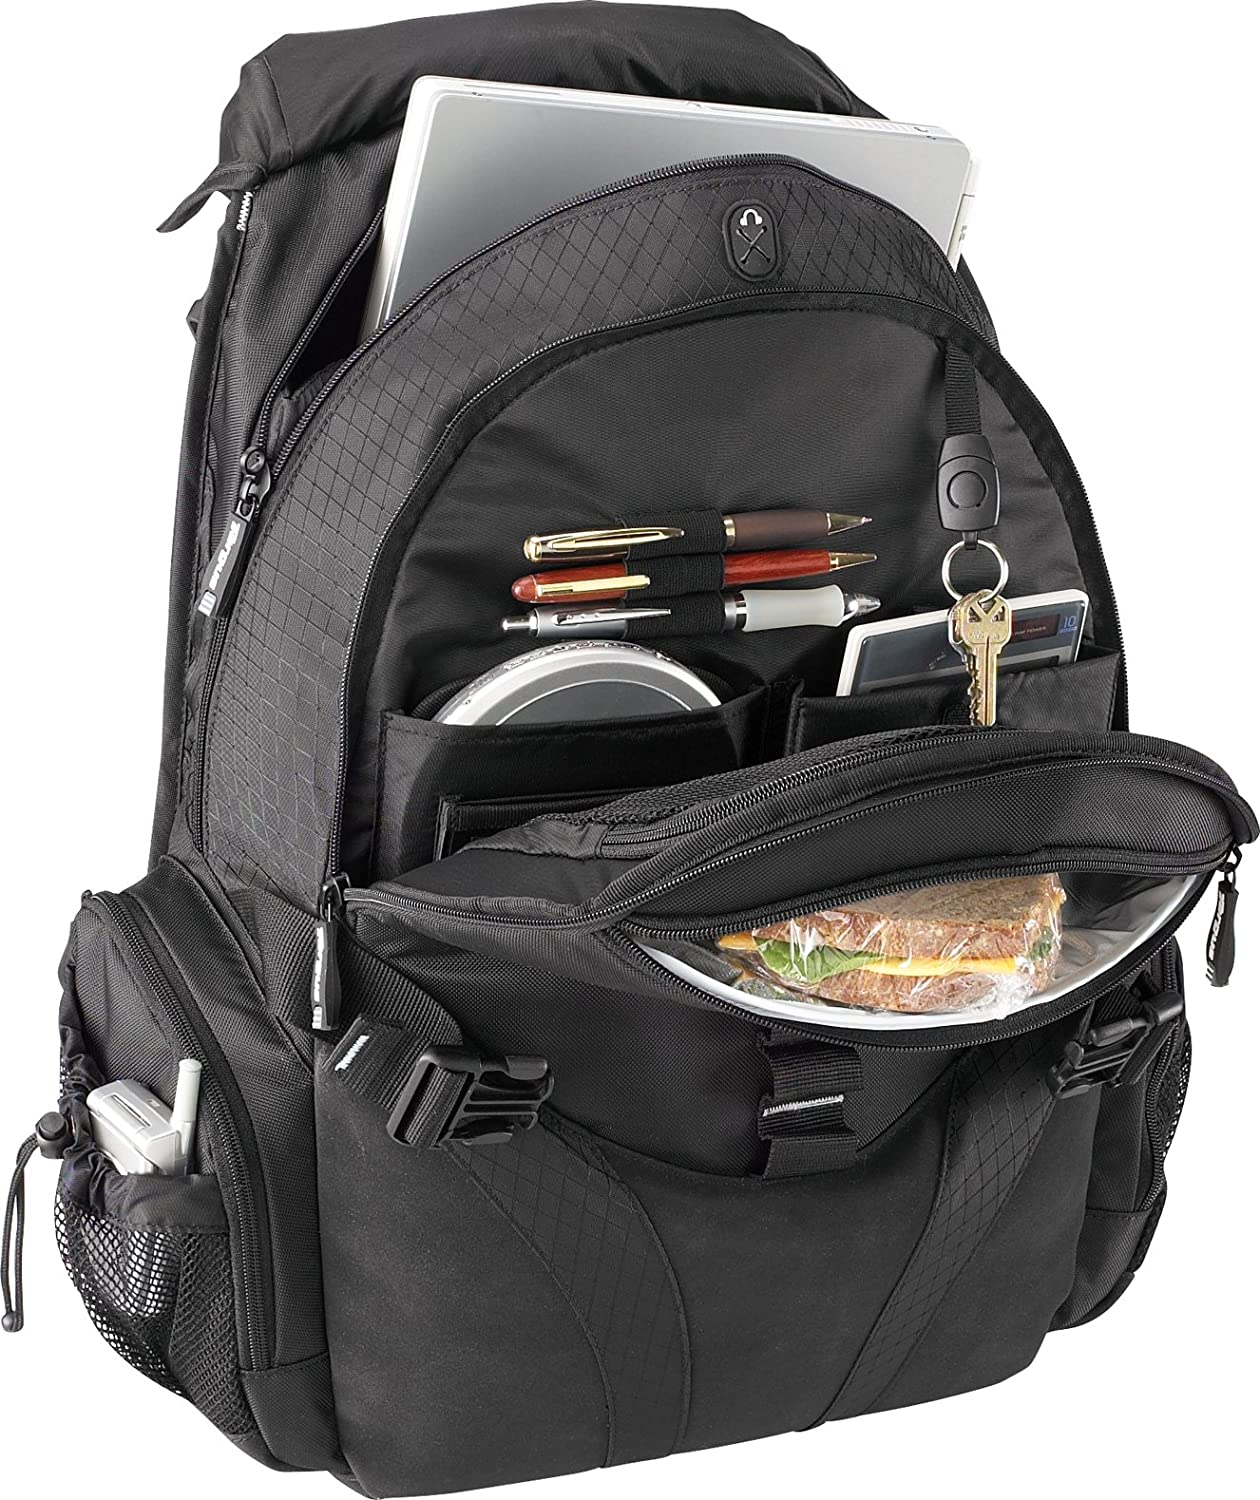 6e2da81769 Targus Voyager Laptop Backpack